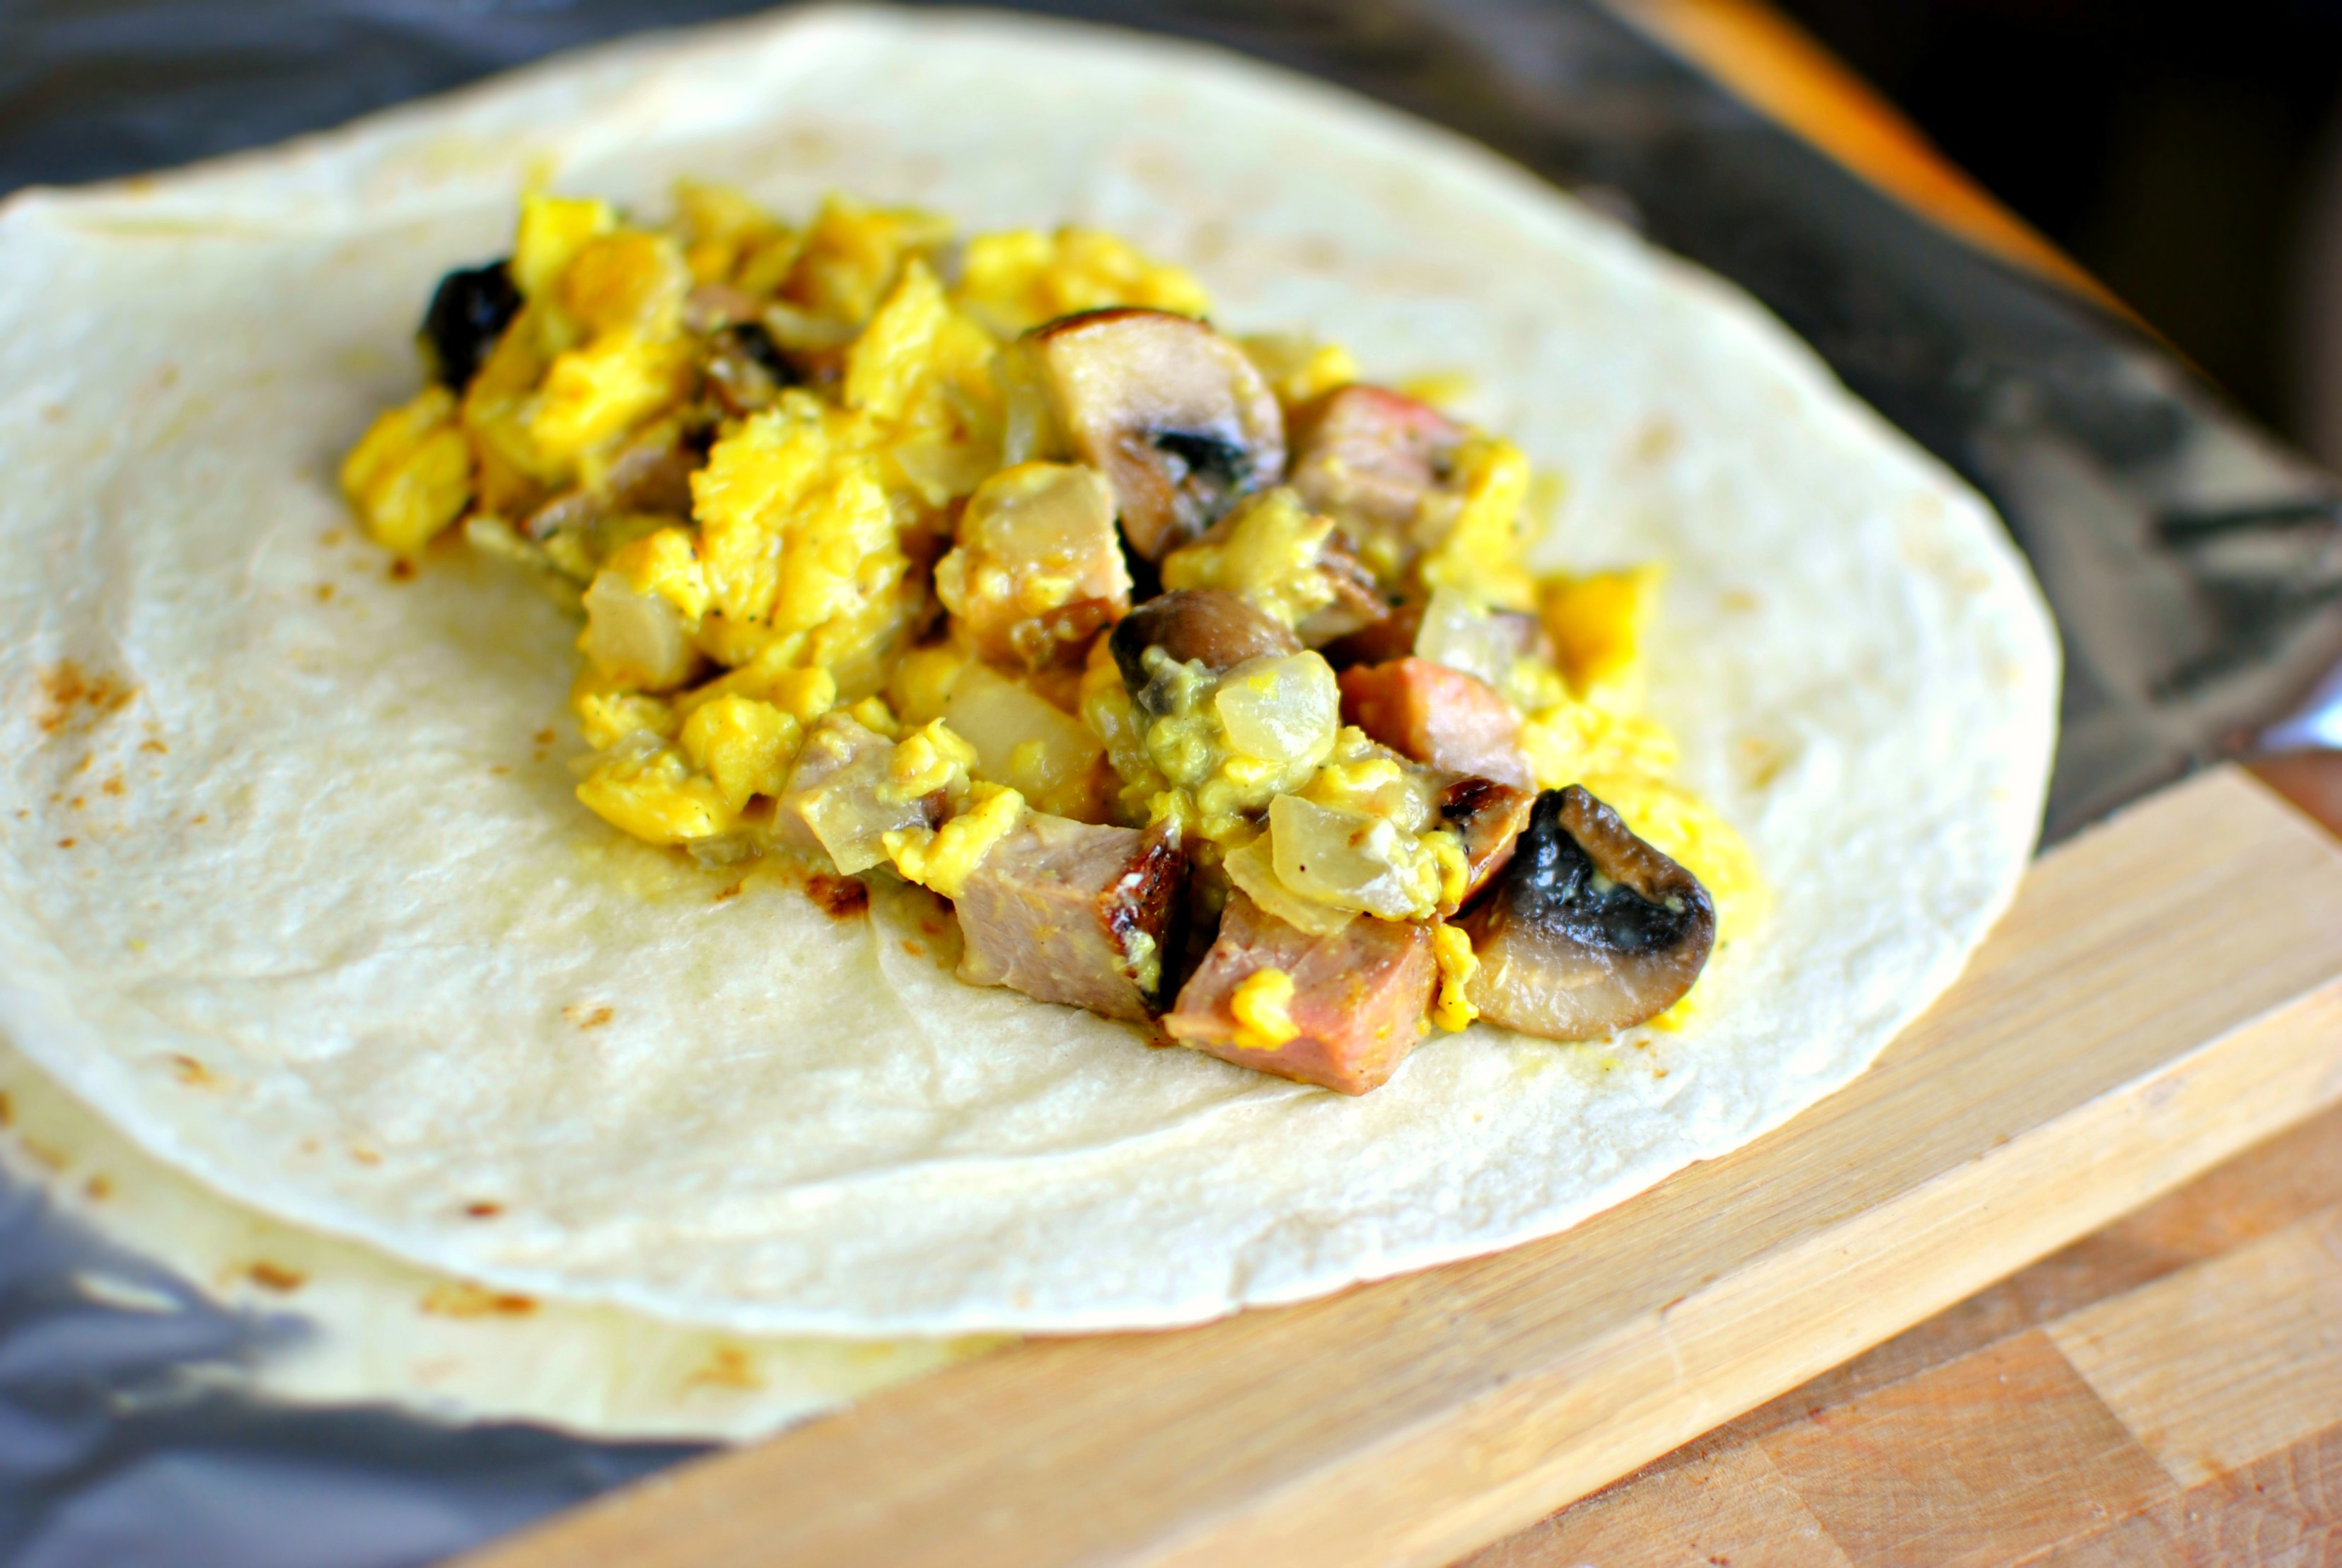 Warm up a few burrito-sized flour tortillas and spoon a healthy ...: http://www.simplyscratch.com/2013/04/steak-and-eggs-breakfast-burritos.html